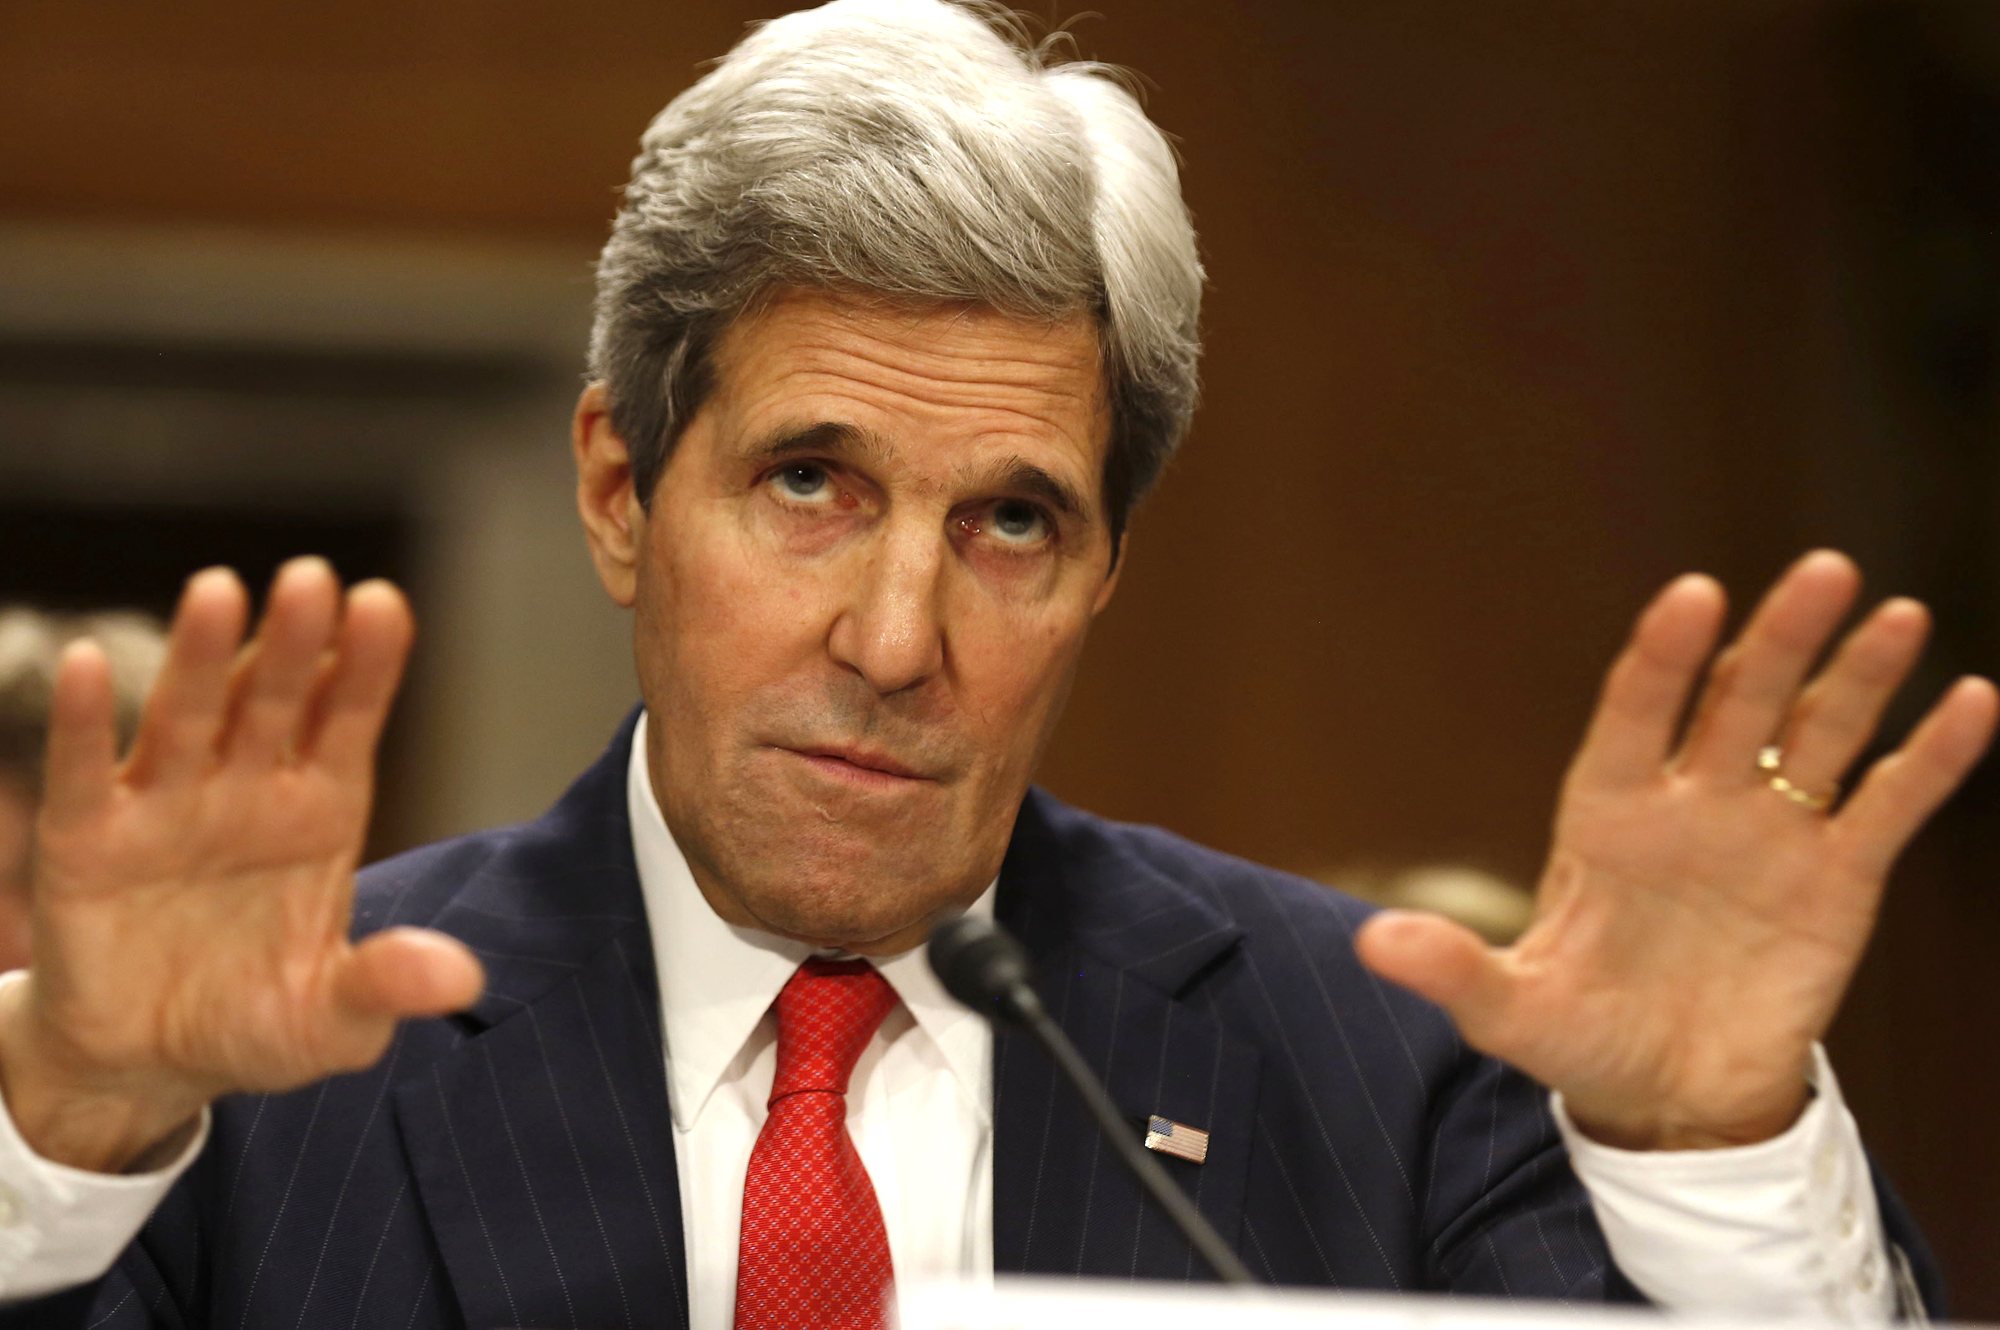 John Kerry Thinks US Will Meet Paris Deal Commitment Despite Trump's Pullout